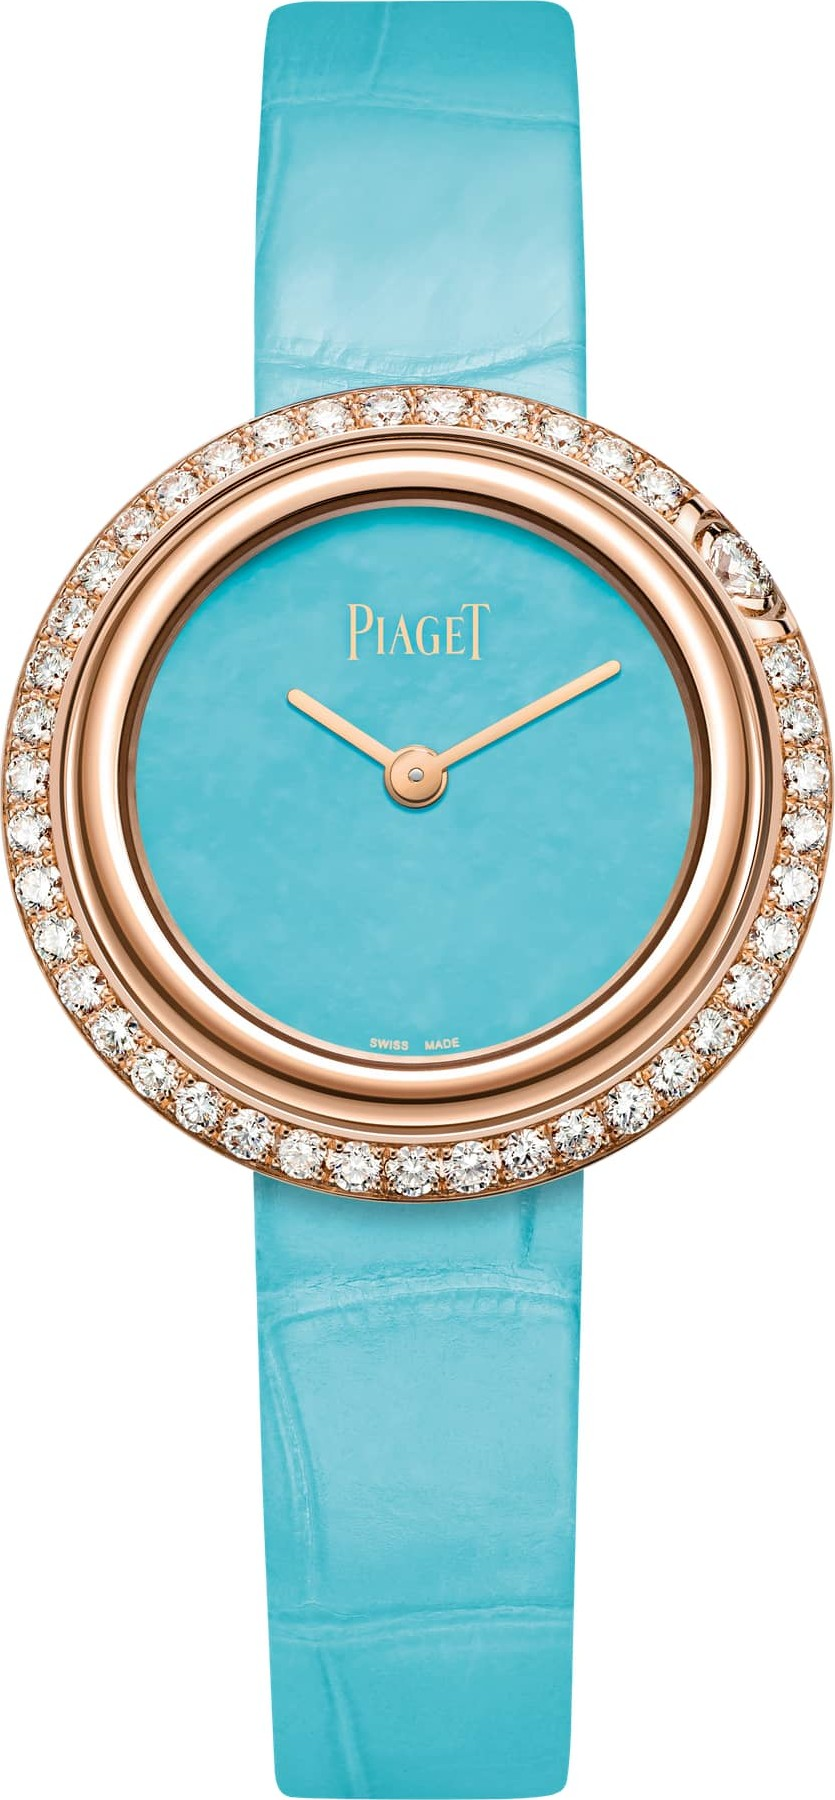 Piaget Possession G0a43089 Ladies Watch 29mm